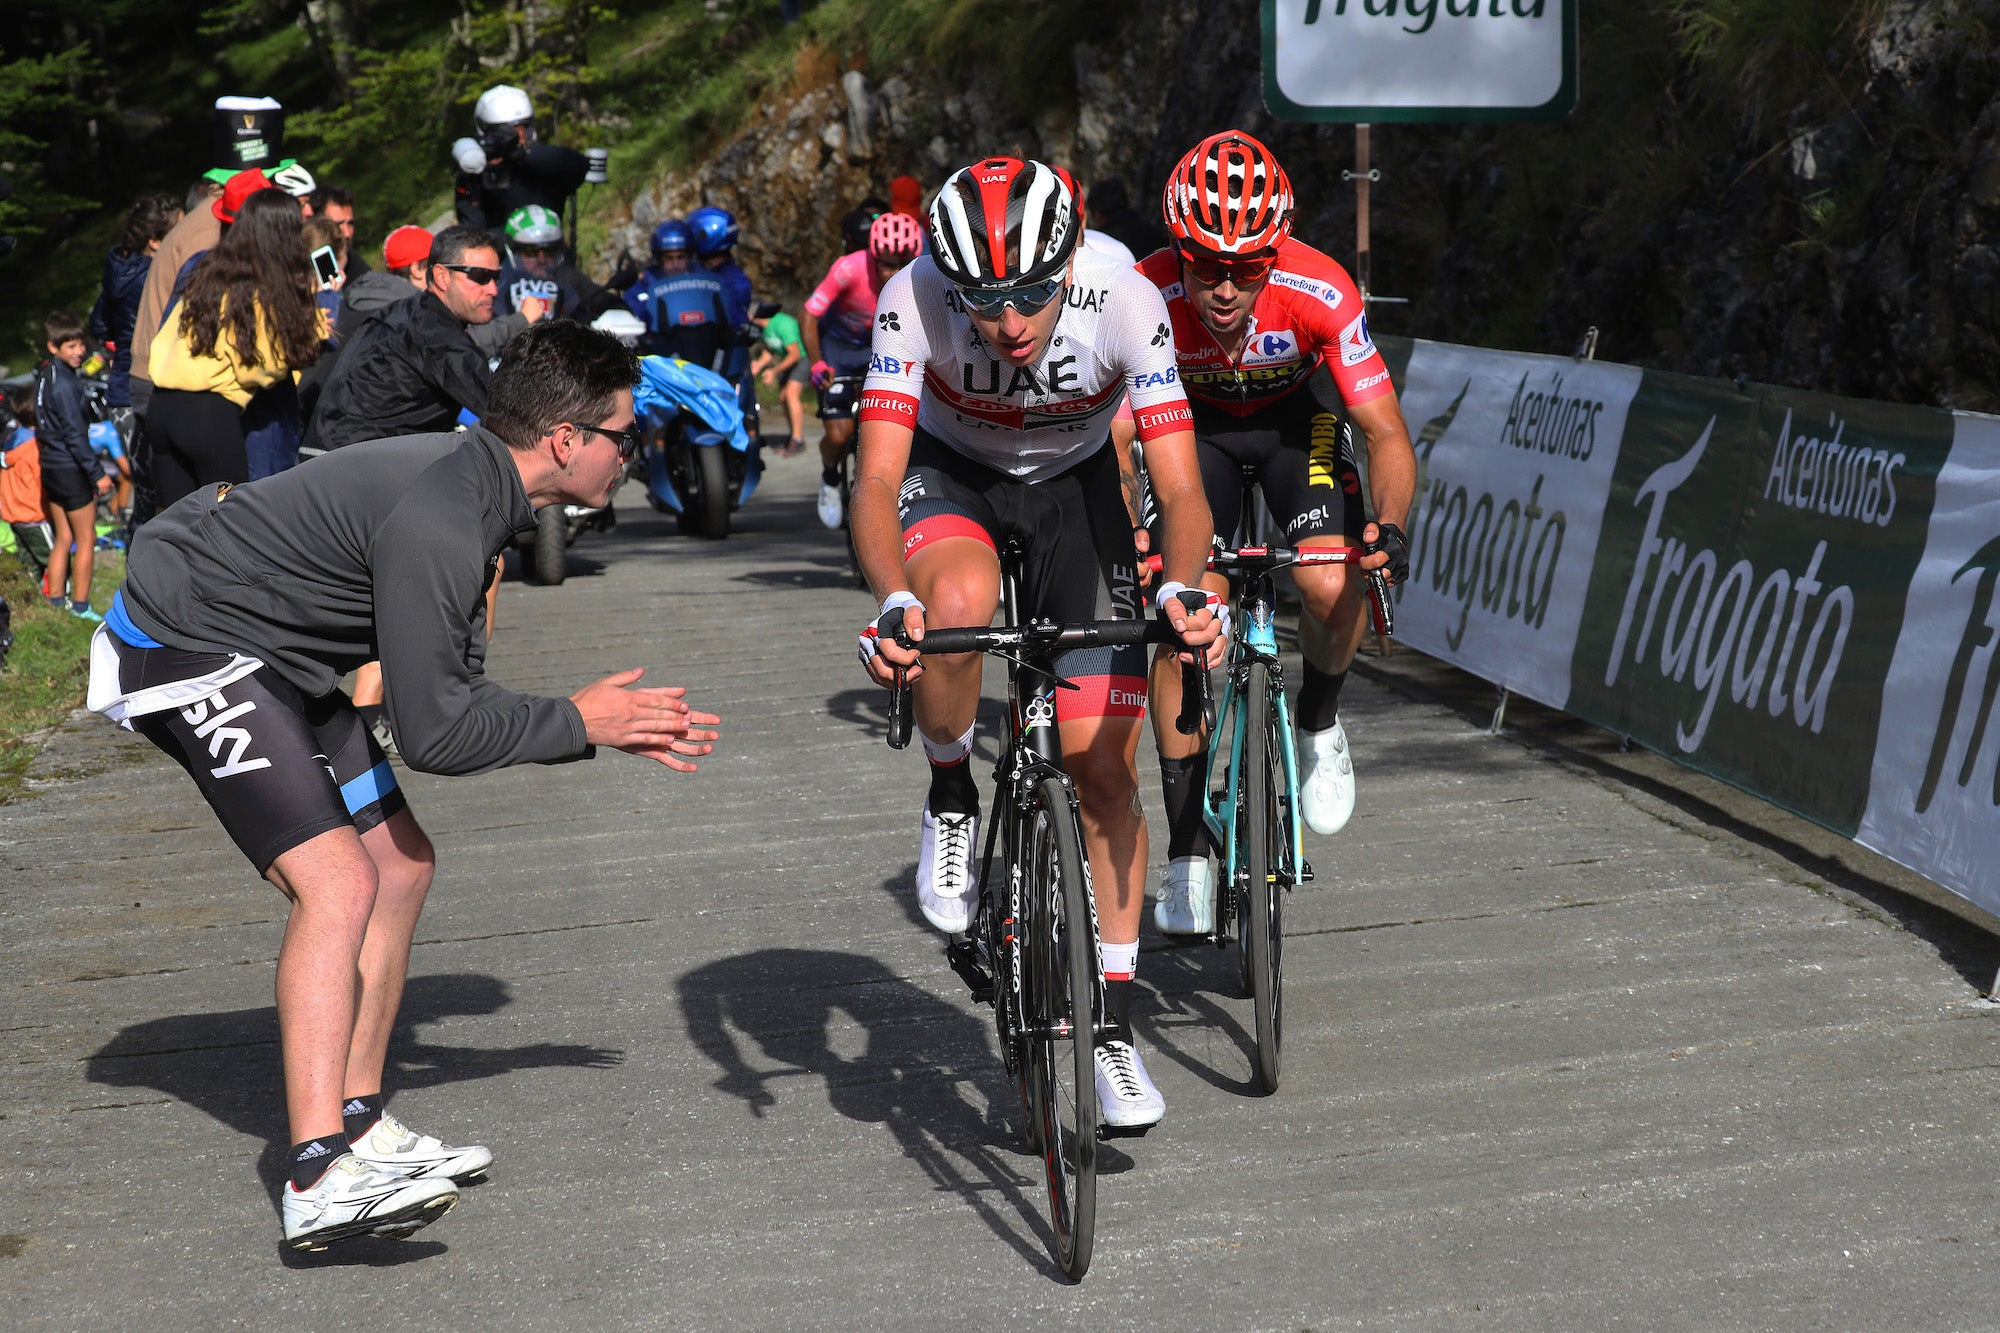 Tadej Pogacar Only 20 Takes Second Stage And Aims At Vuelta Podium Velonews Com